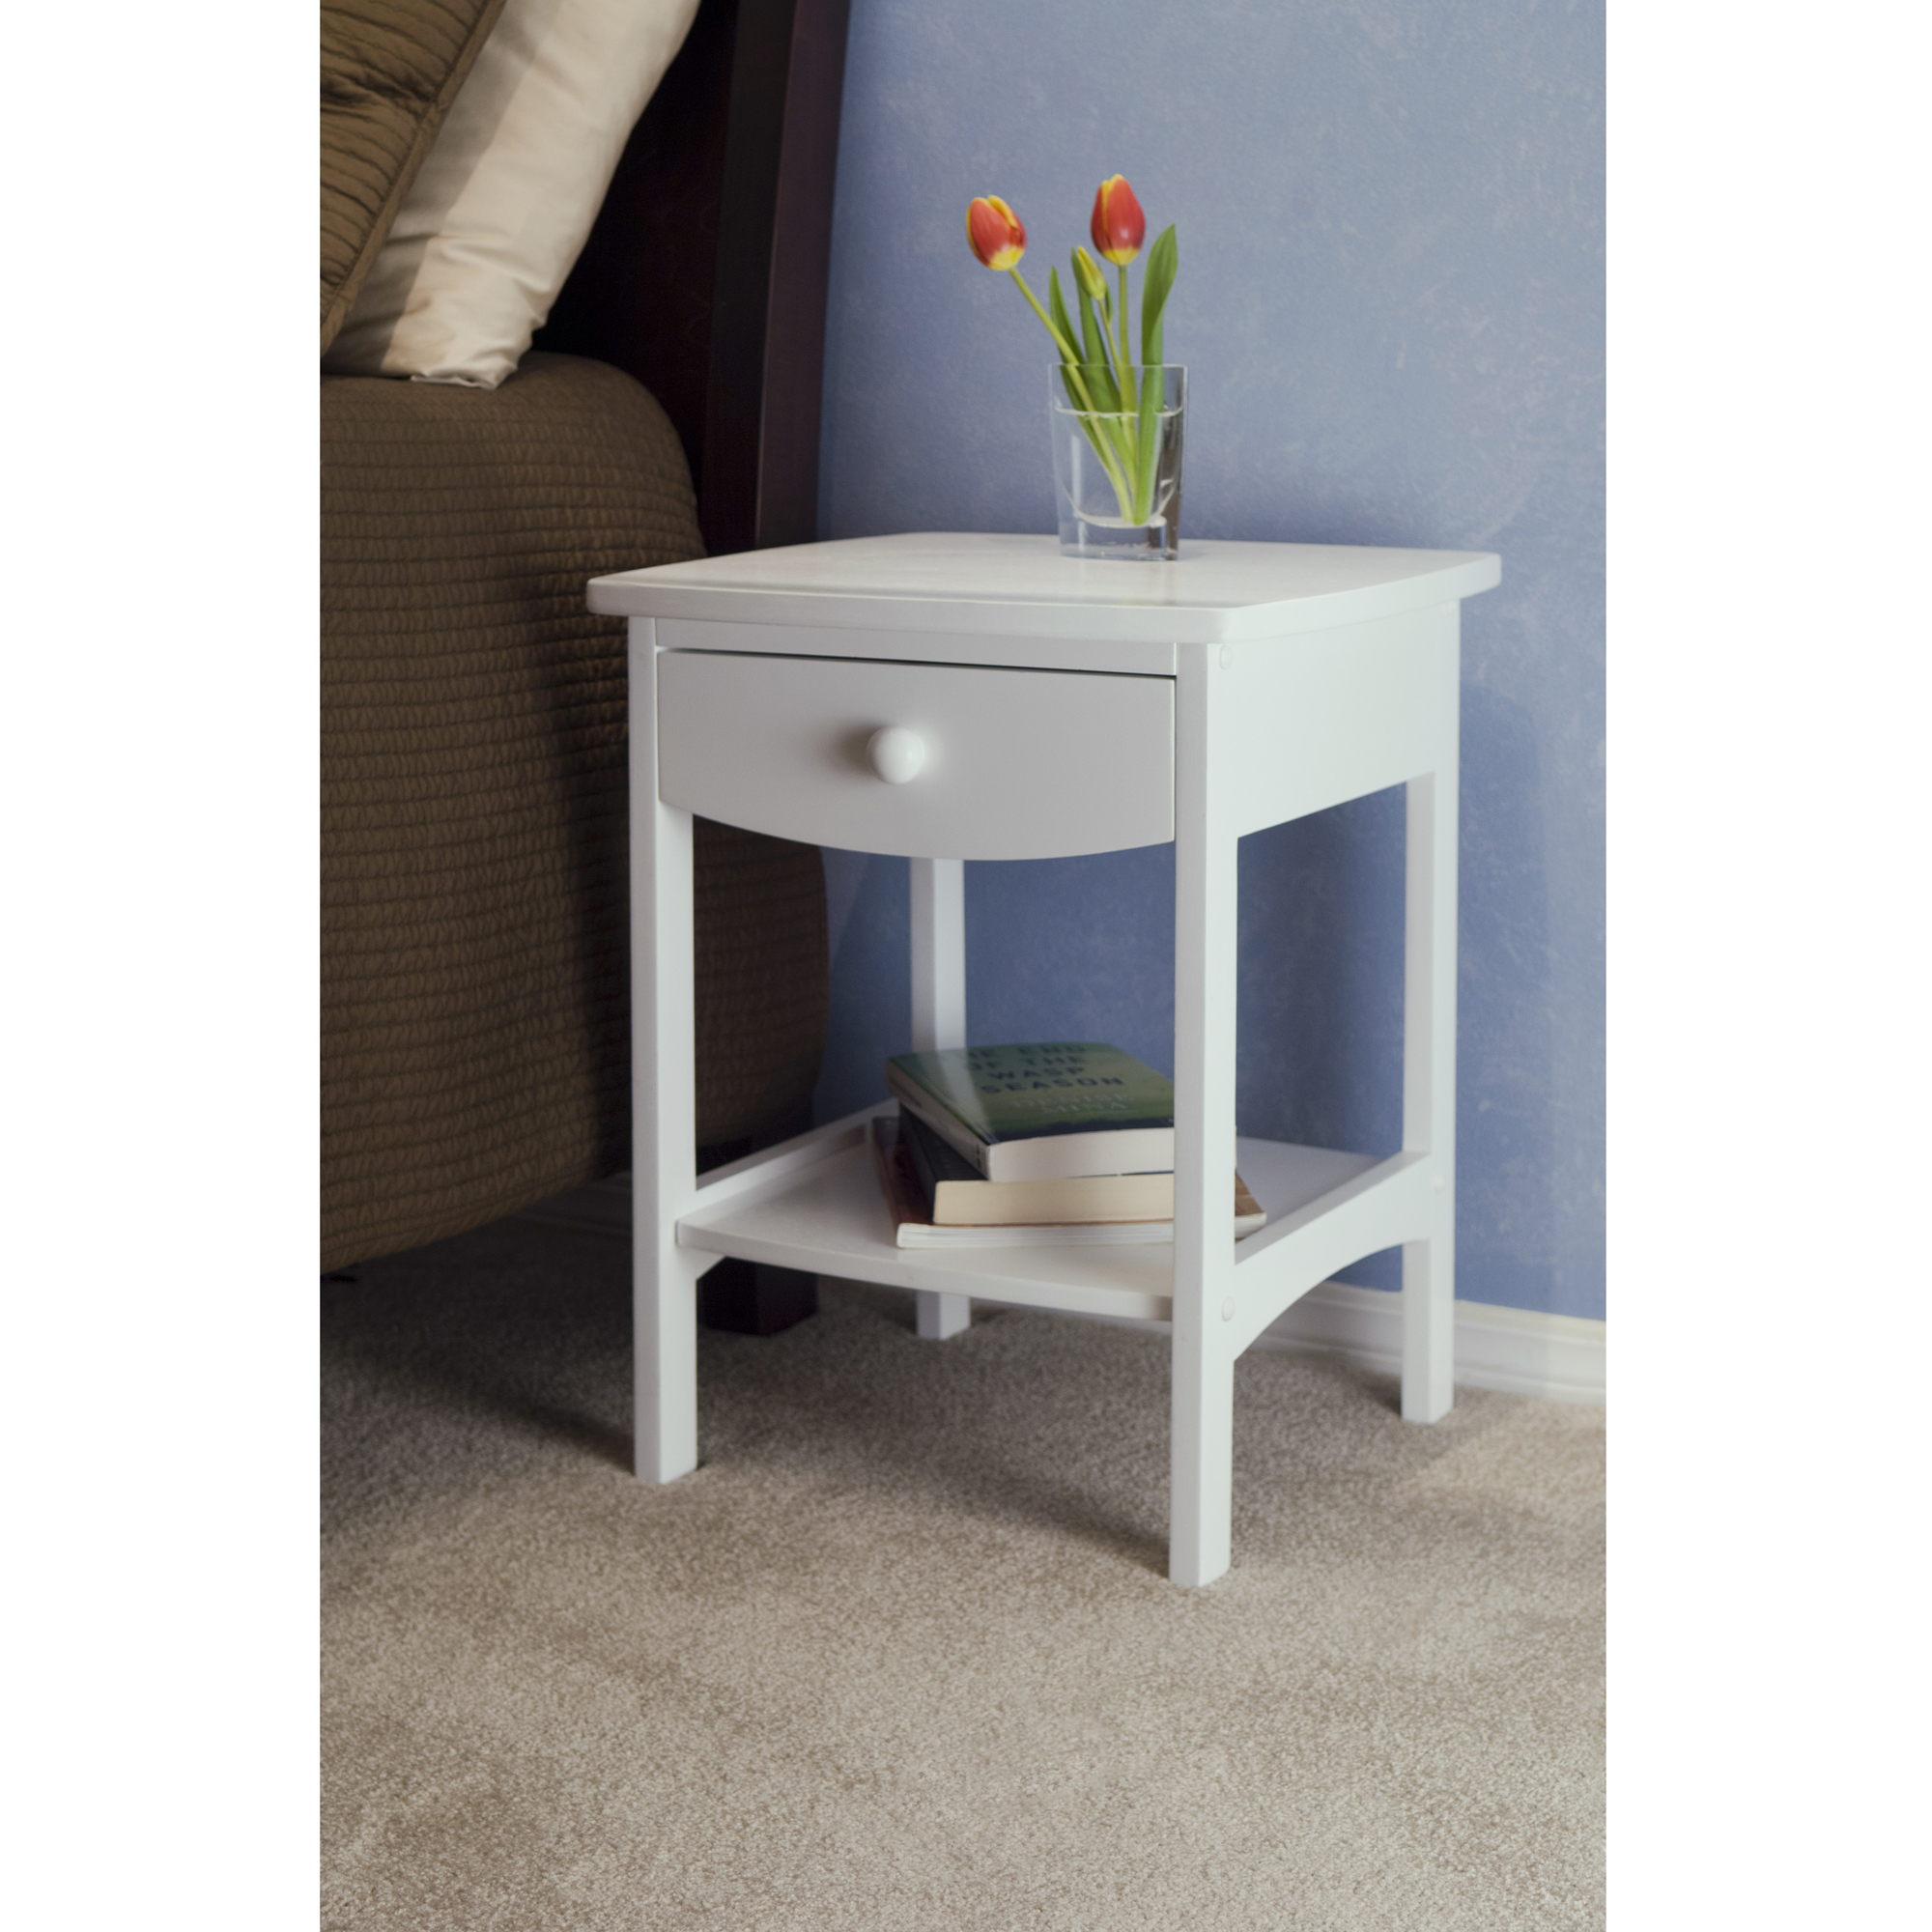 winsome wood claire accent table white finish prod scandinavian side pier one decor american made furniture modern contemporary coffee tudor high back dining chairs hairpin wine